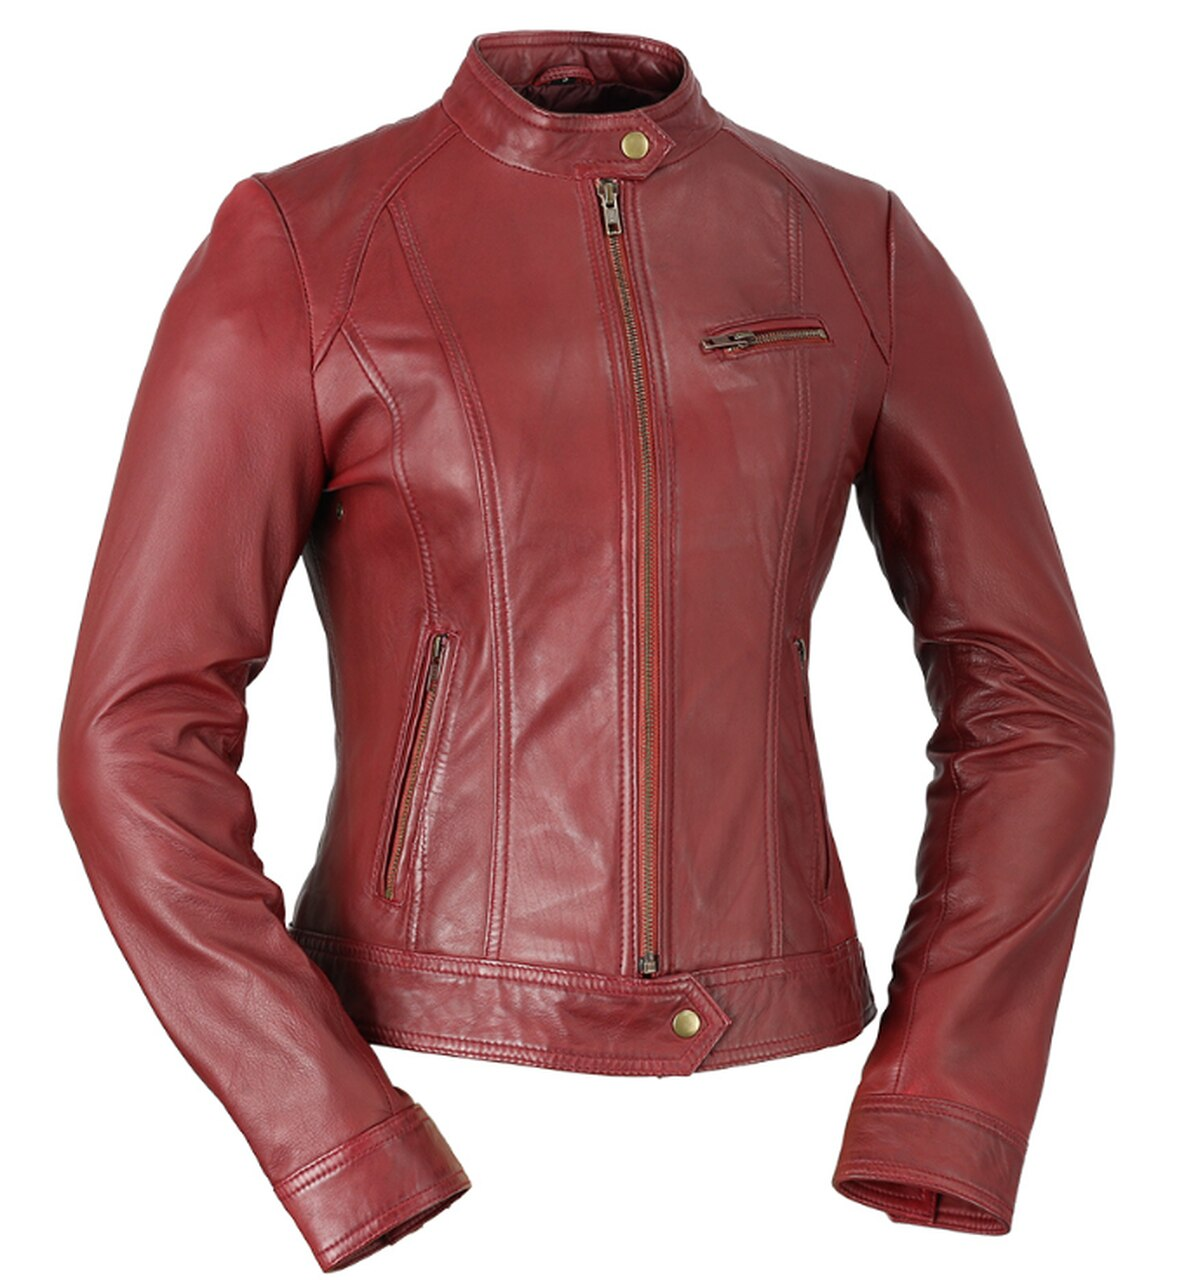 Favorite - Women's Leather Jacket - Many Colors